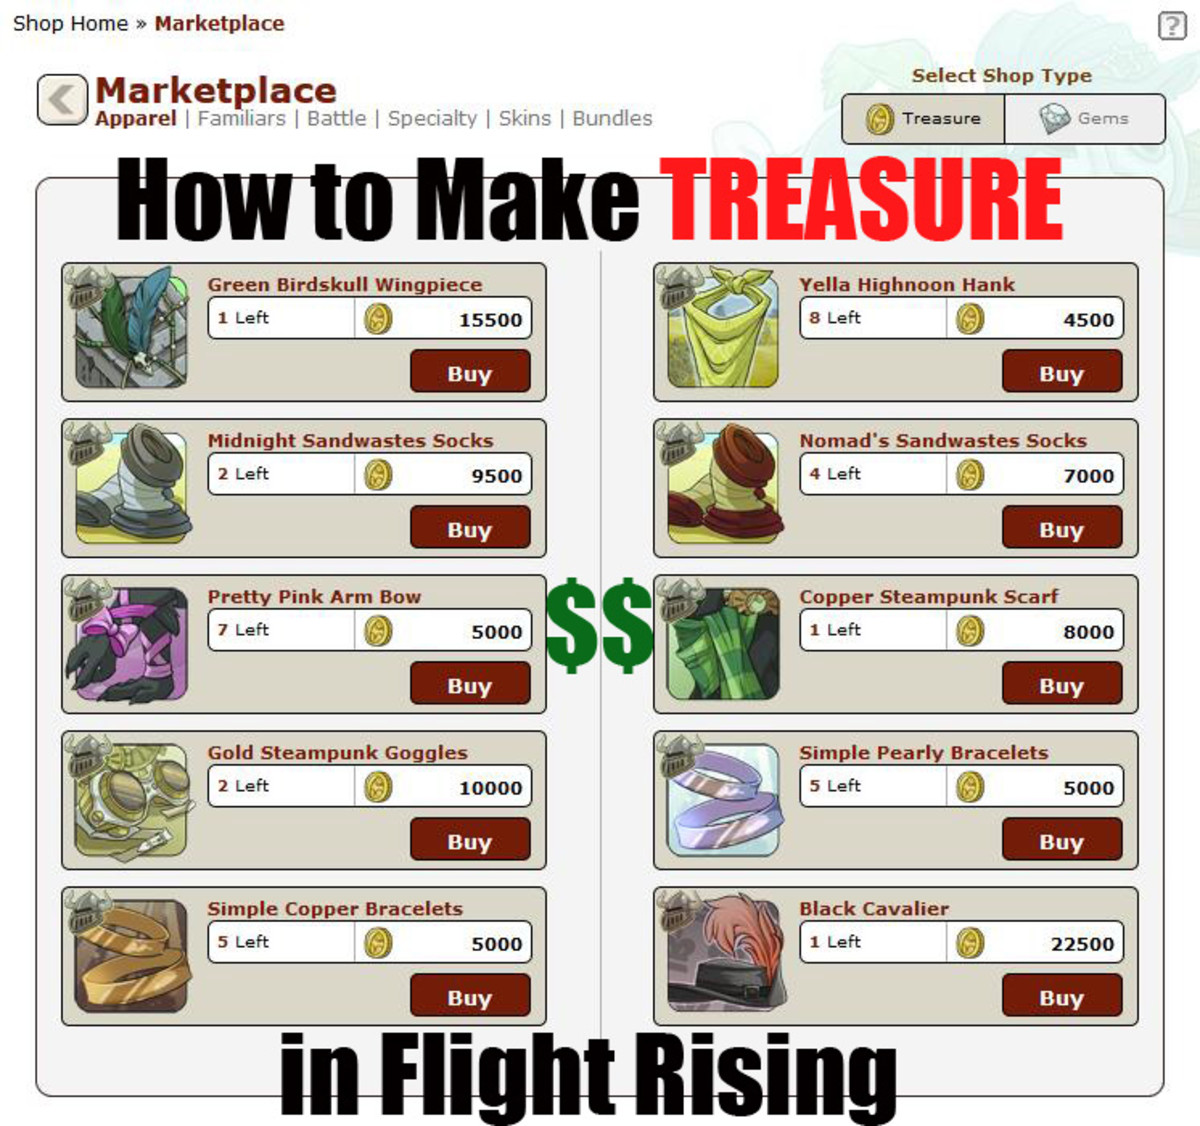 Want to know how to make treasure in Flight Rising? Then look no further!